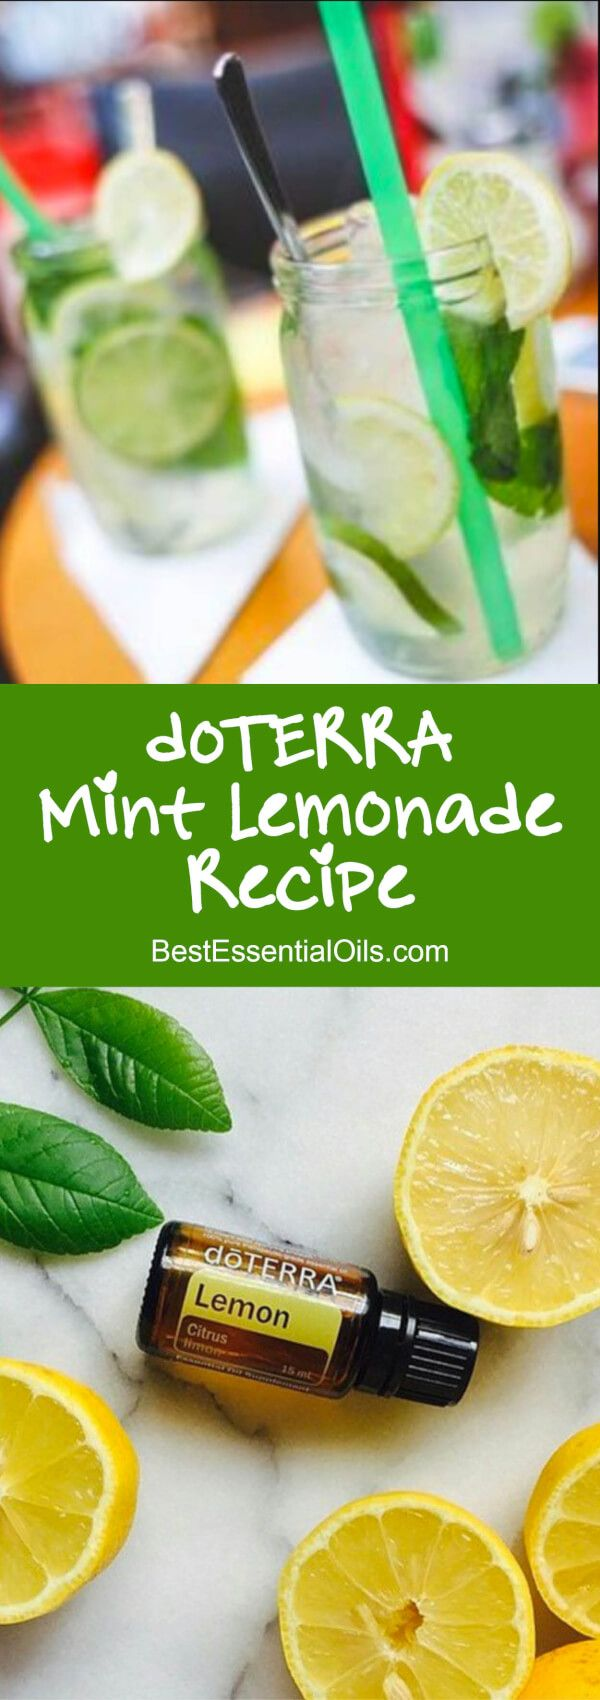 doTERRA Mint Lemonade Recipe Lemon and peppermint oils with sugar to taste and sparkling water